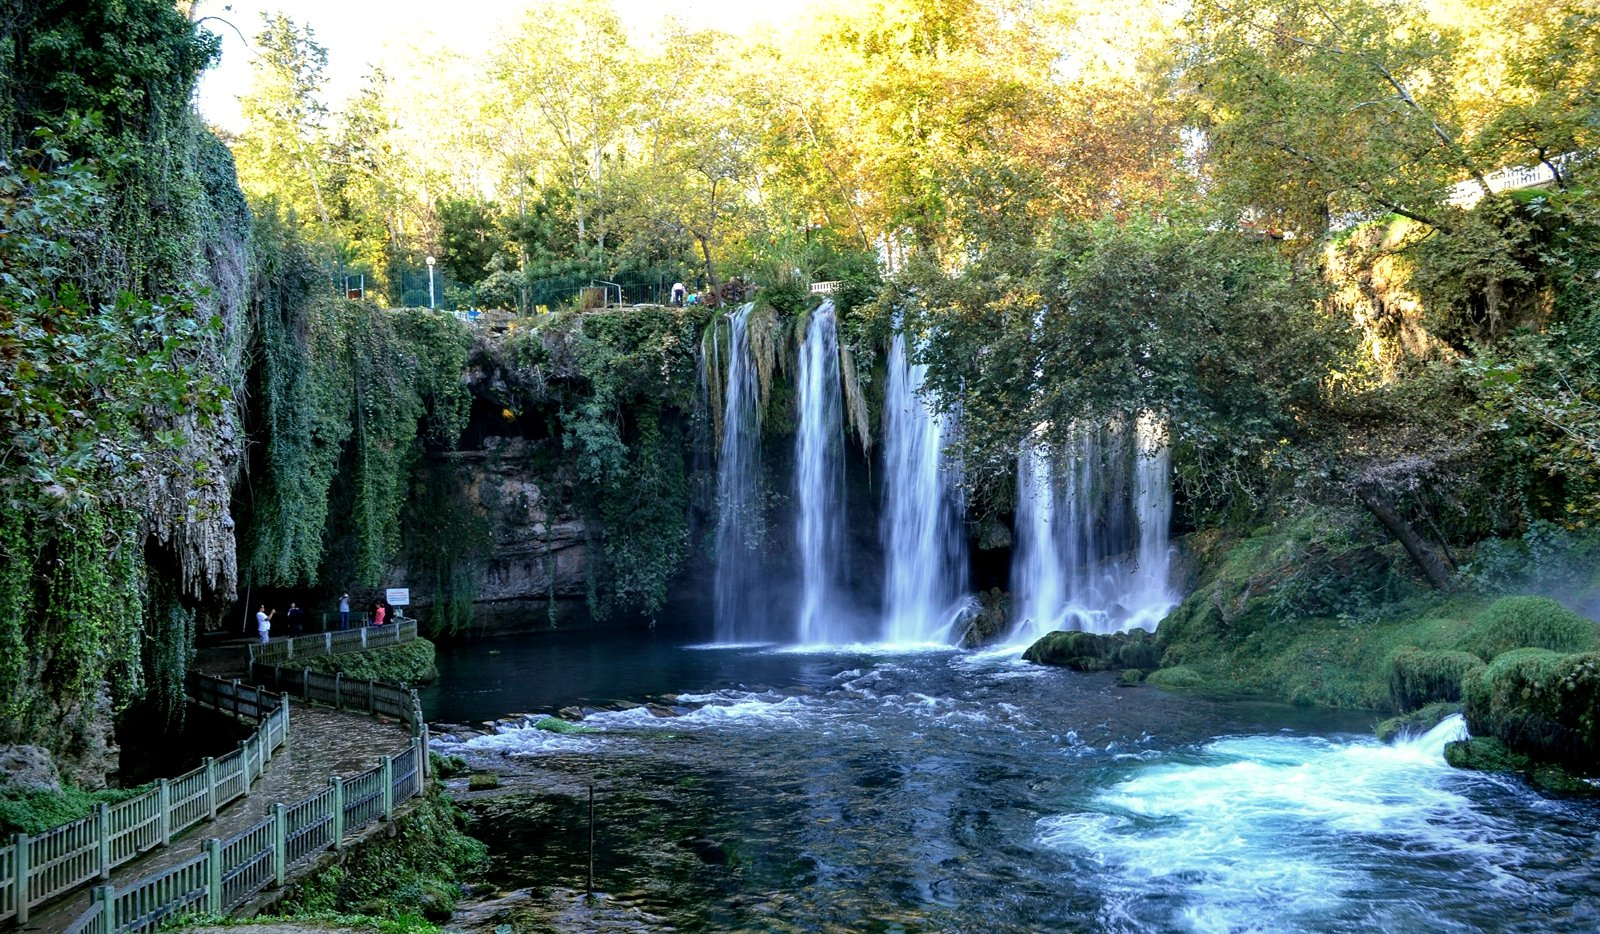 How to walk along the Duden Waterfalls in Antalya